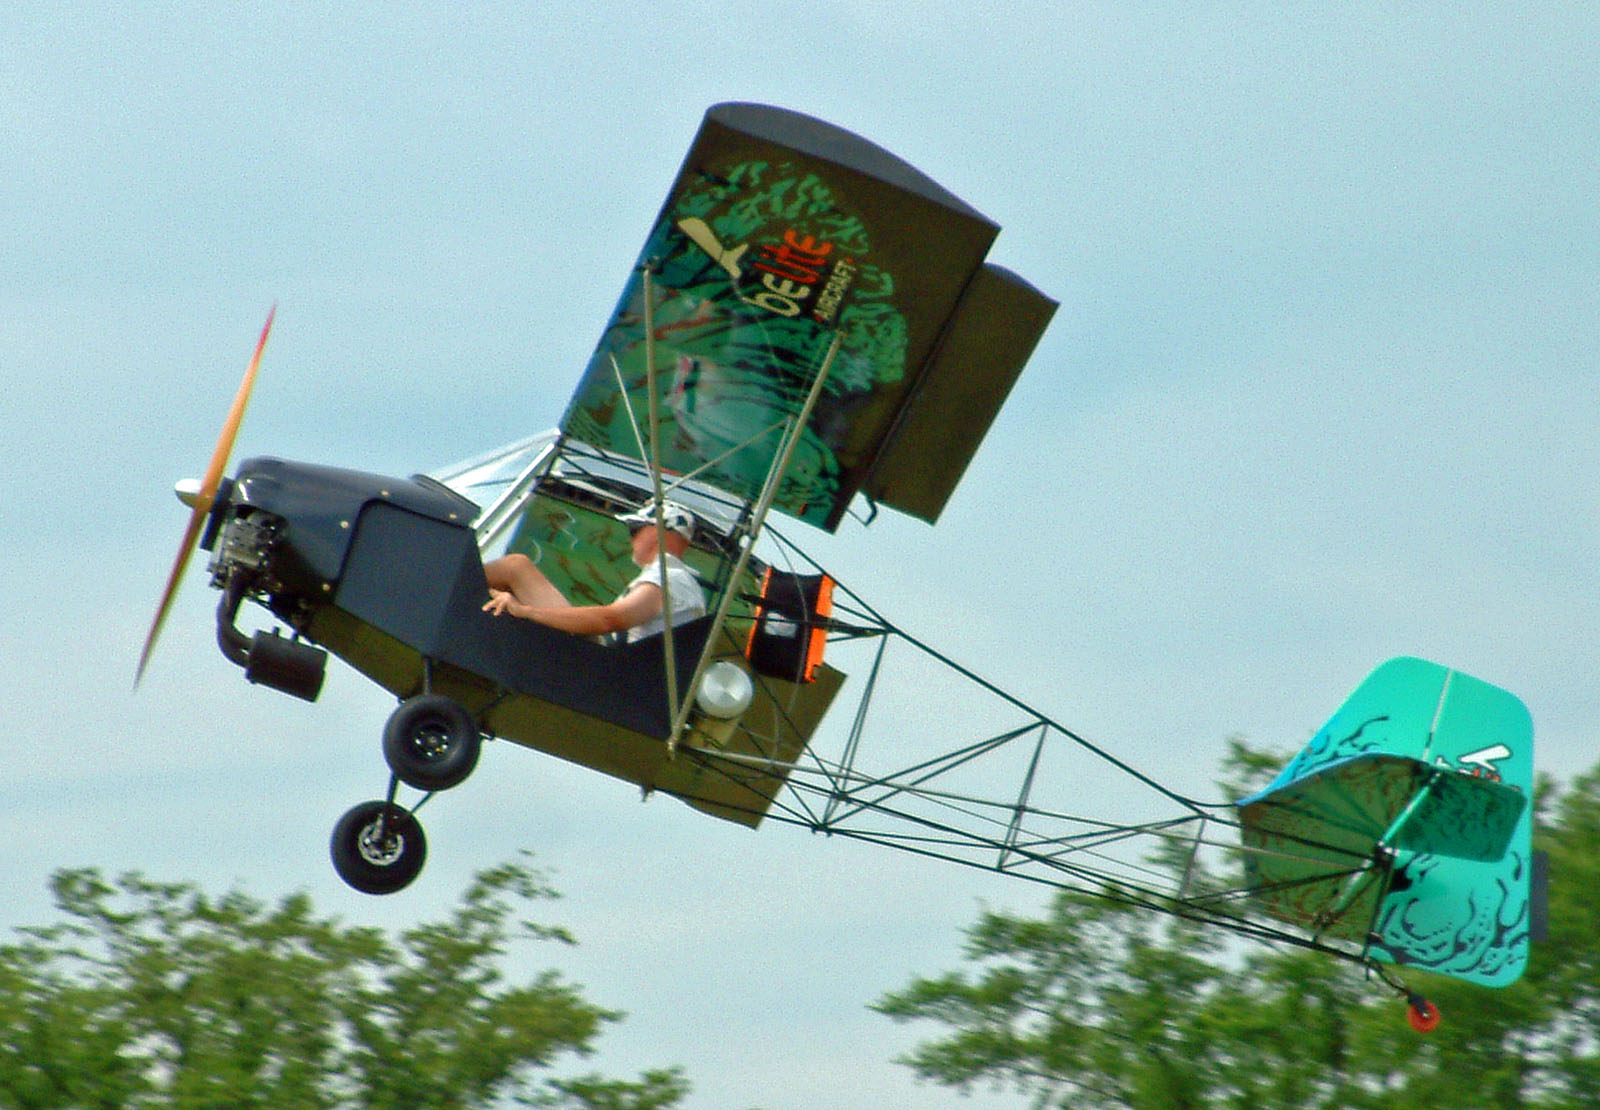 Airplane bet at home tv en direct nowe konto bet at home bonus code Kit Ultralight Aircraft